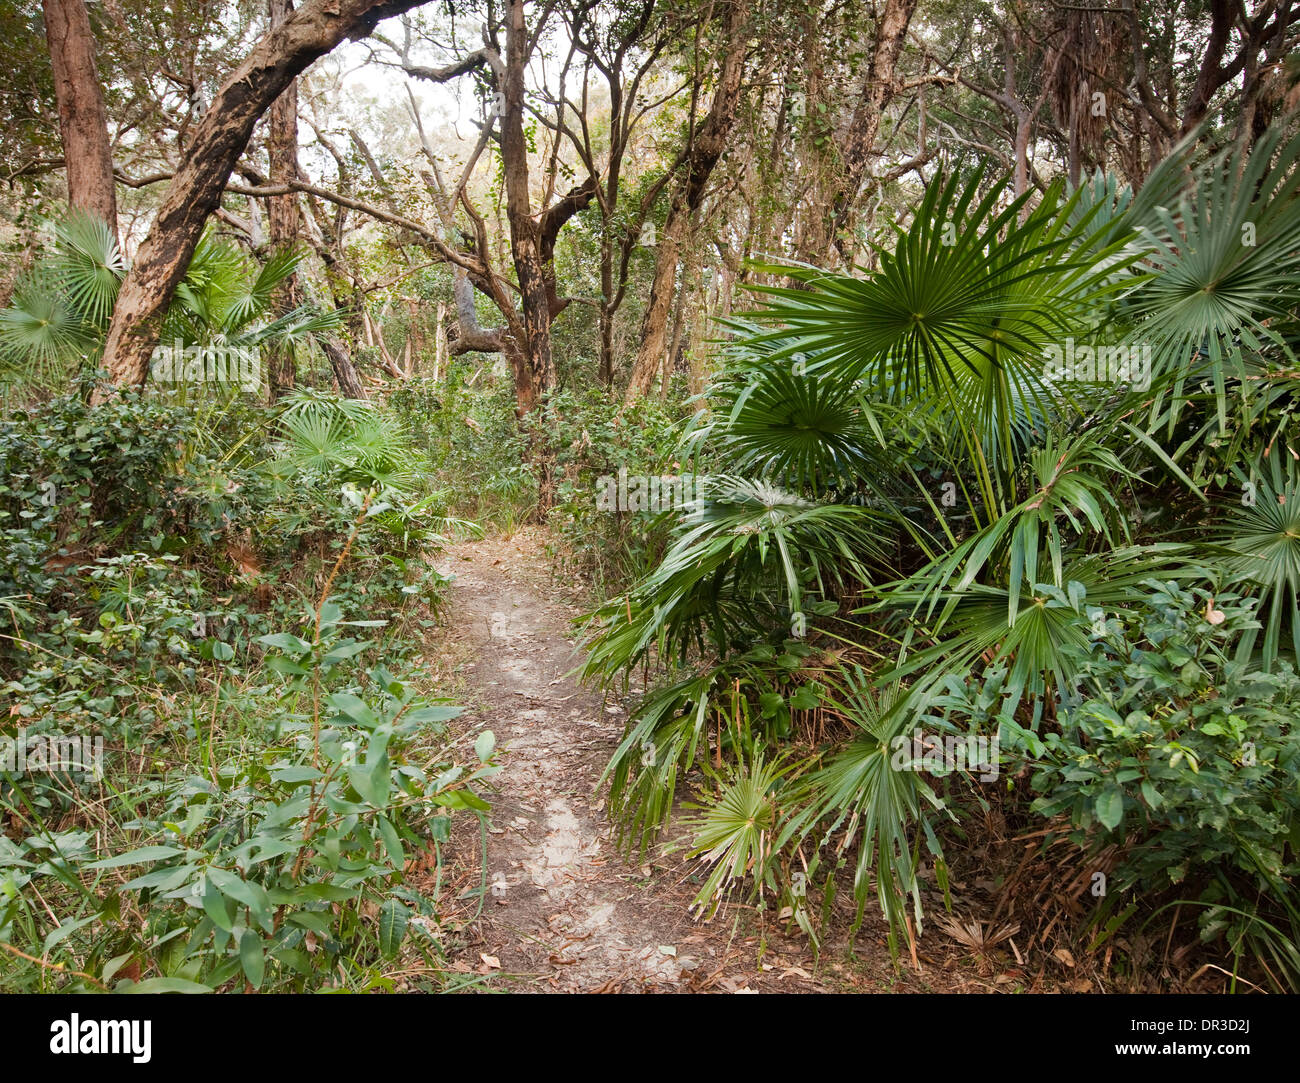 Narrow walking trail through coastal forest landscape with palm trees at Hat Head National Park NSW Australia - Stock Image